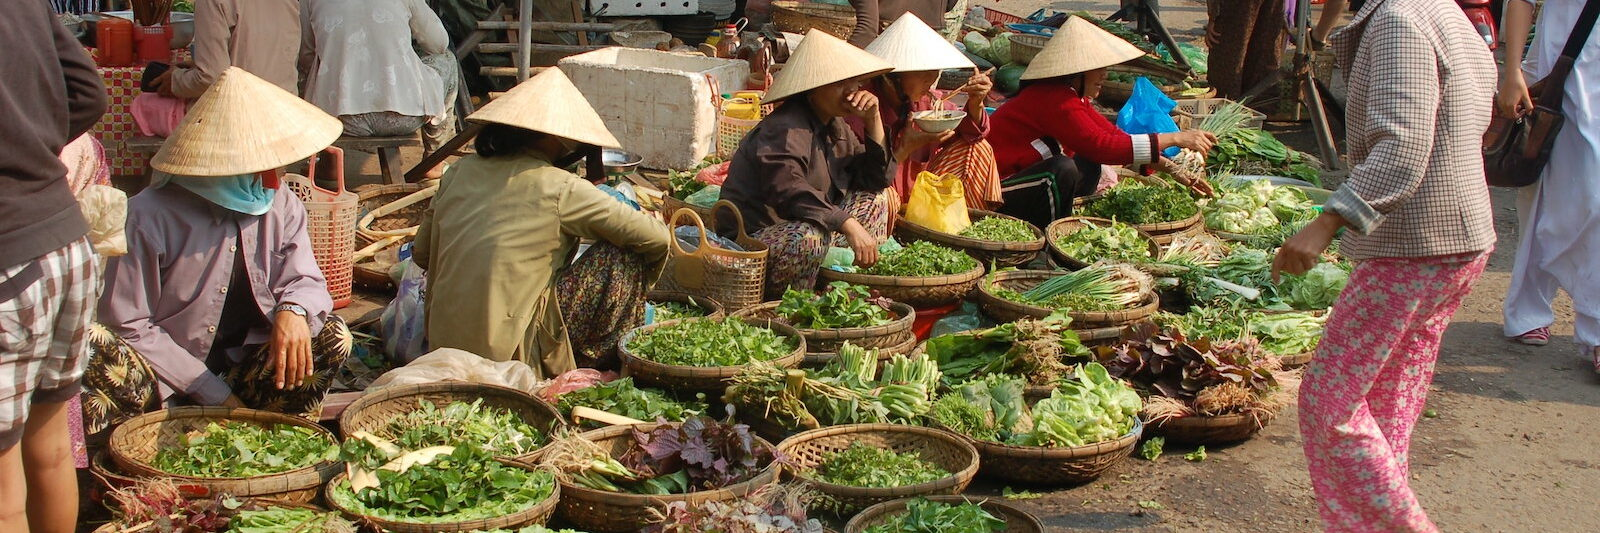 Image of a day market in Hoi An, Vietnam